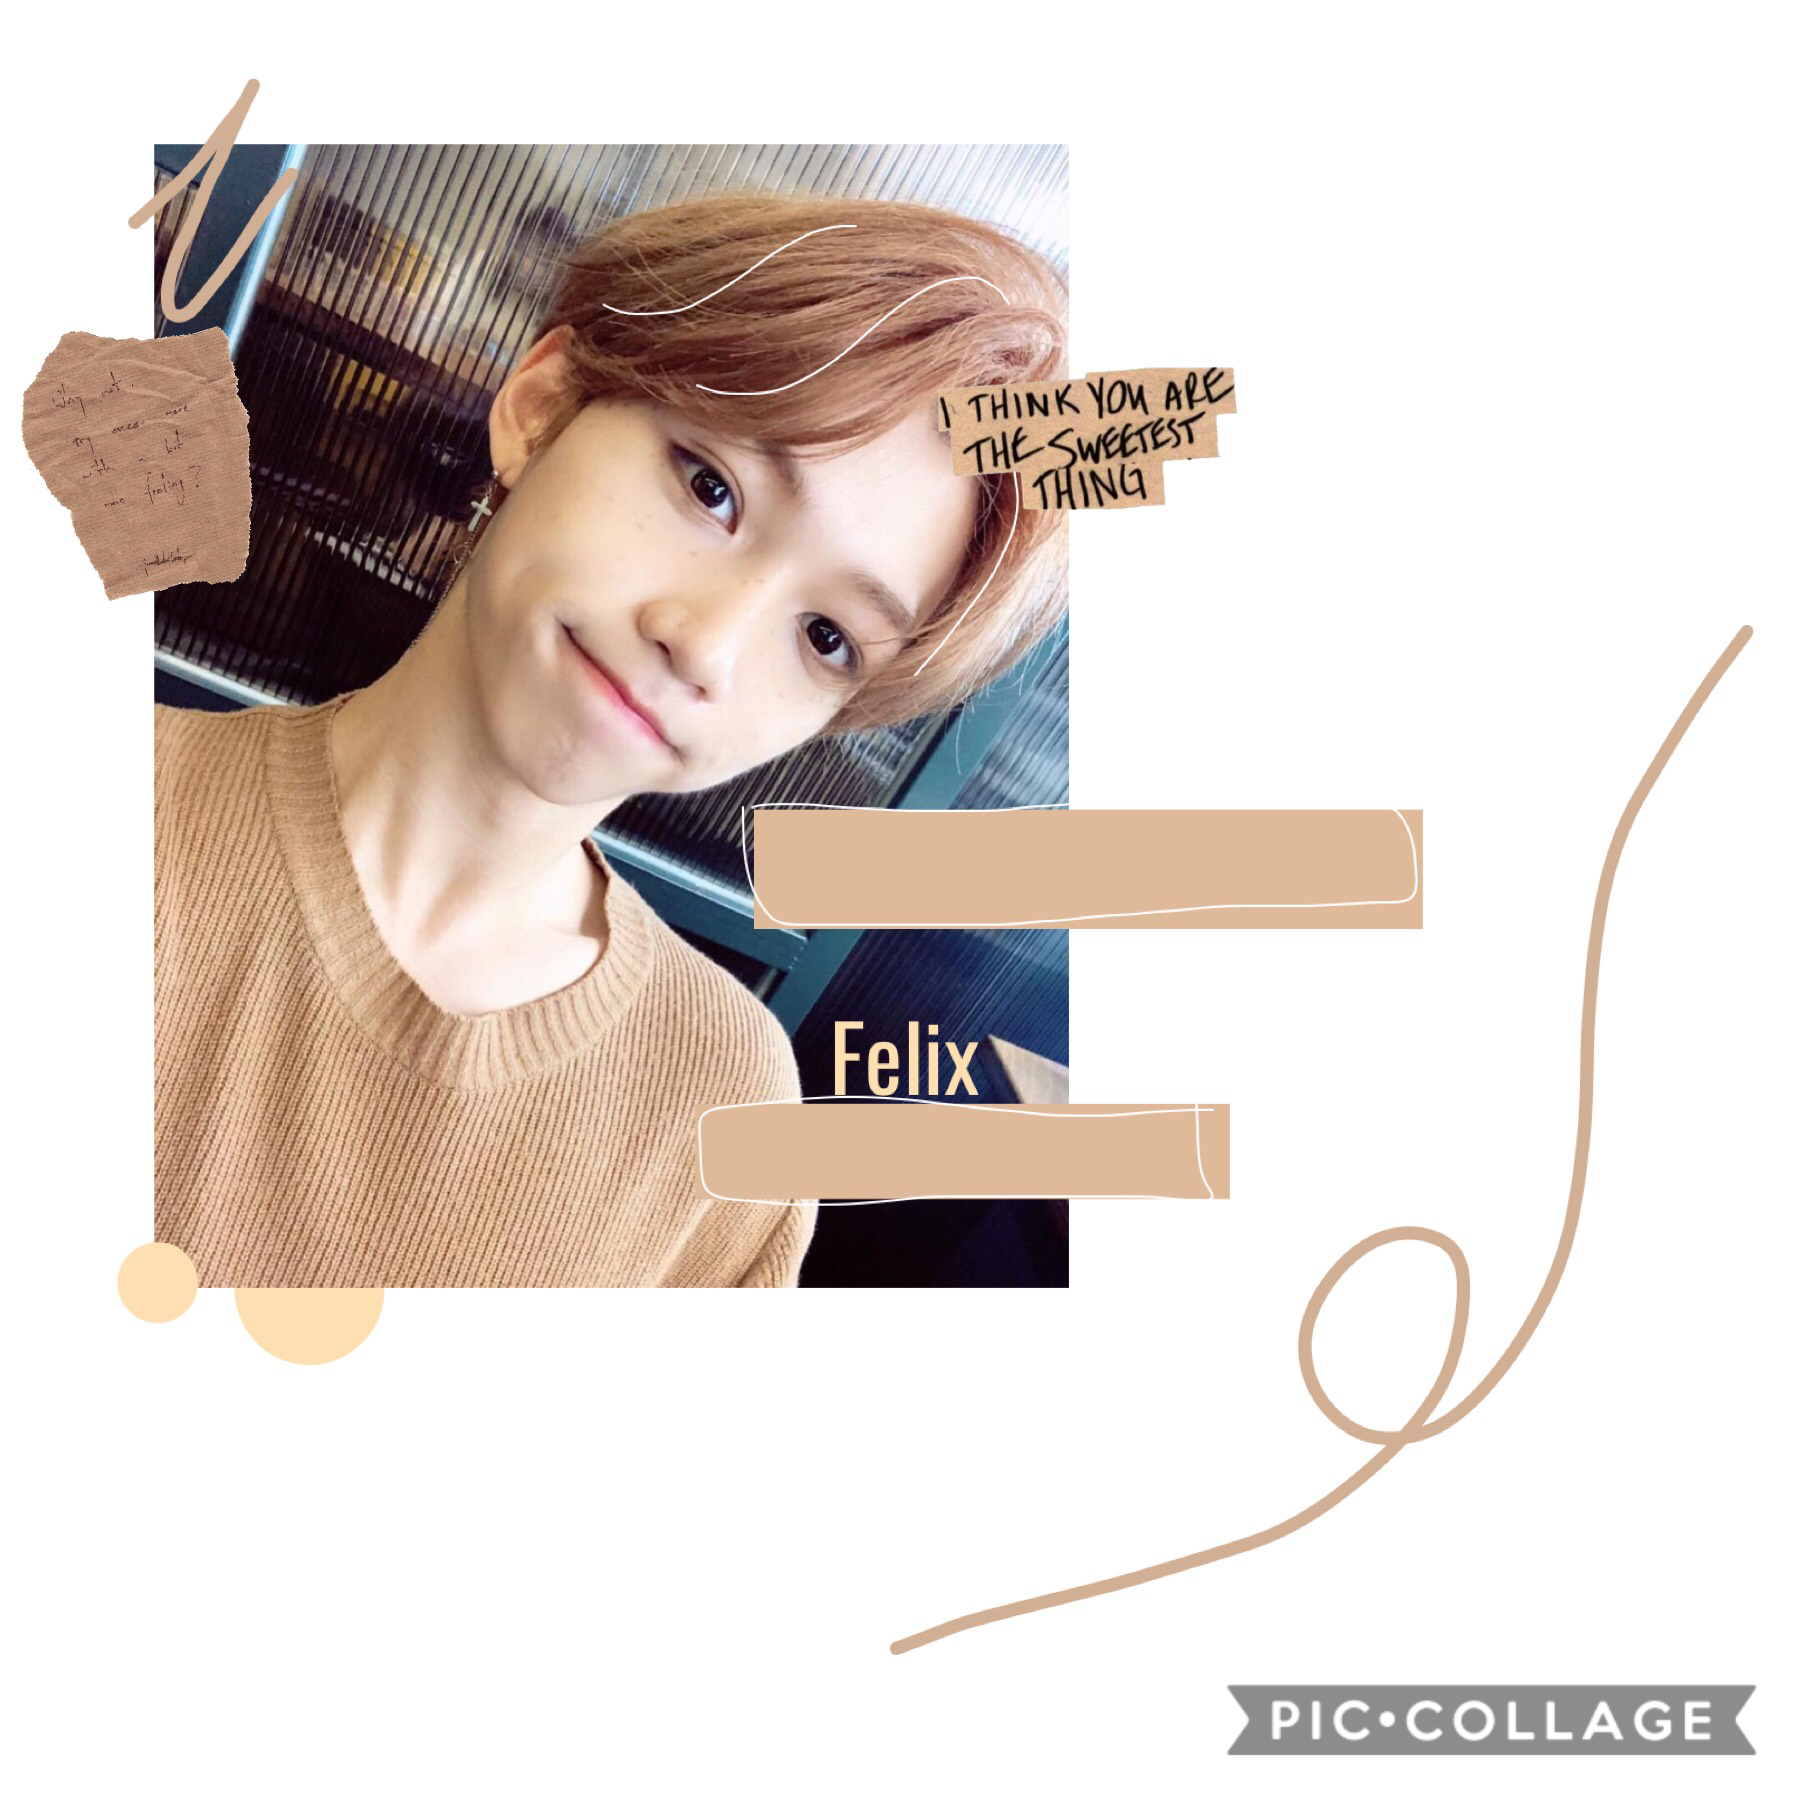 Felix edit because I have been worrying way to much about Stray Kids' mental health, especially Felix's- Take care of yourself Felix💖✨